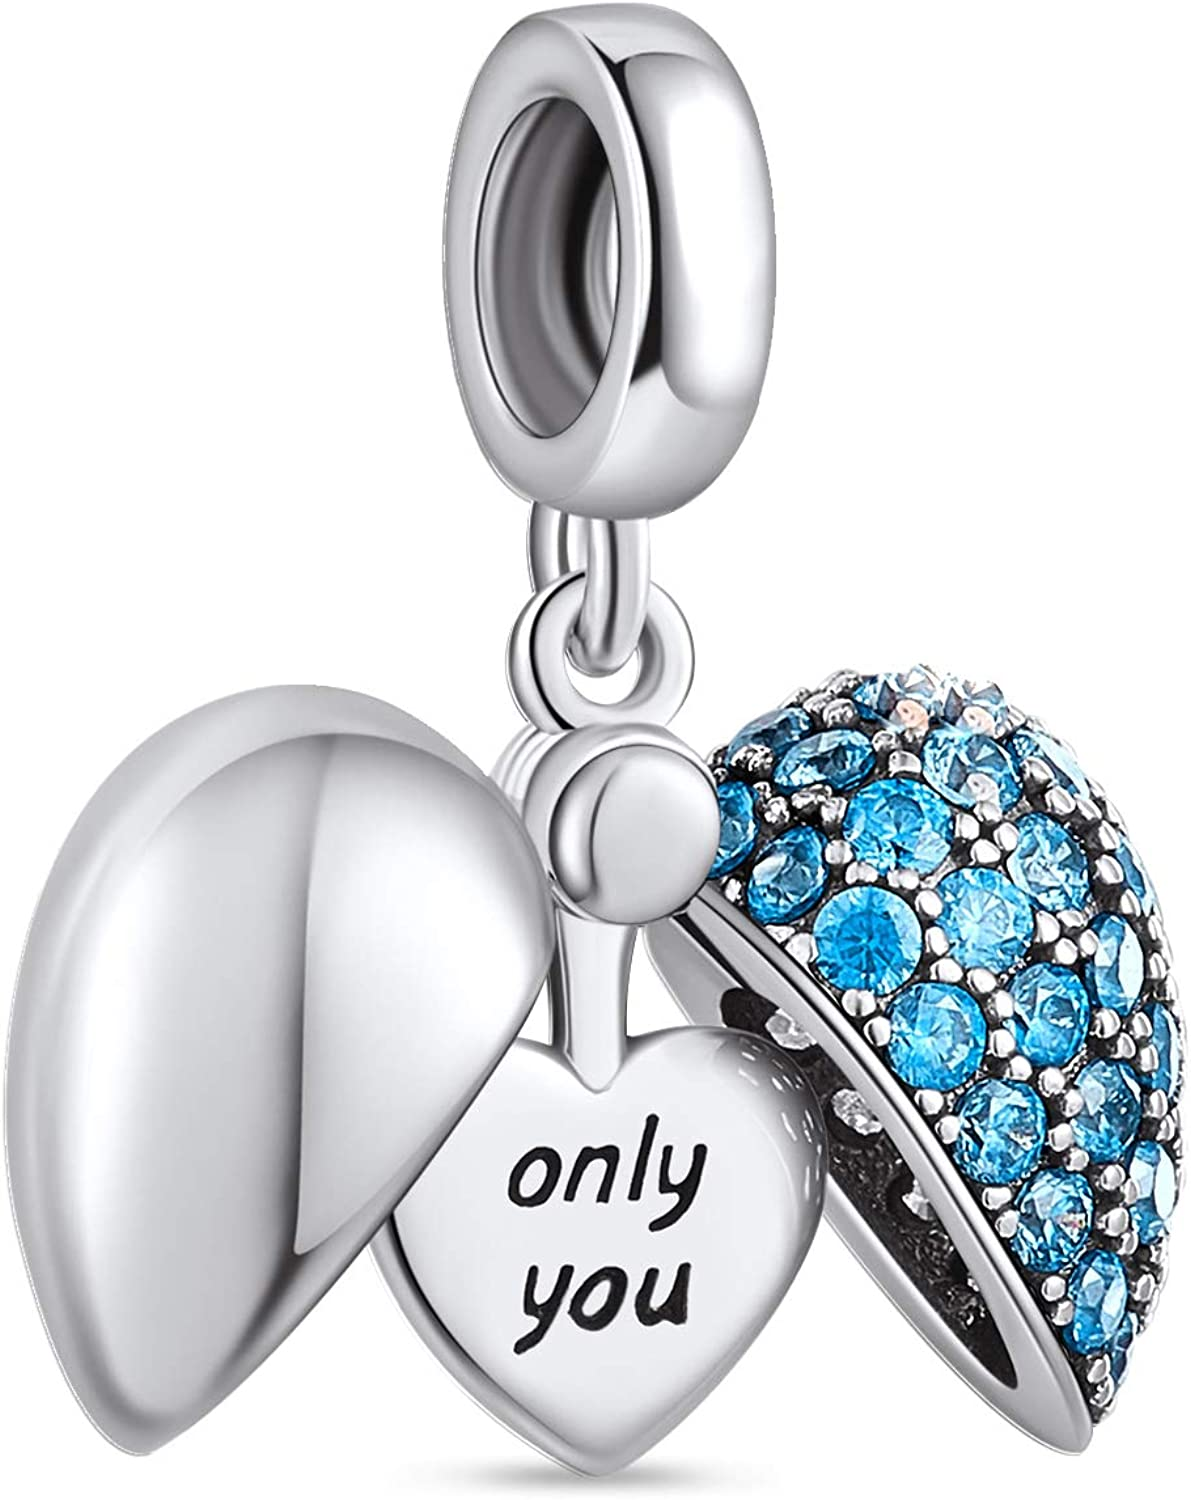 """NINGAN """"I Love You"""" Heart Pendant Love Charm 925 Sterling Silver Dangle  Charms Jewelry Making fits Pandora Charms Clearance Bracelets and Necklaces  ..."""